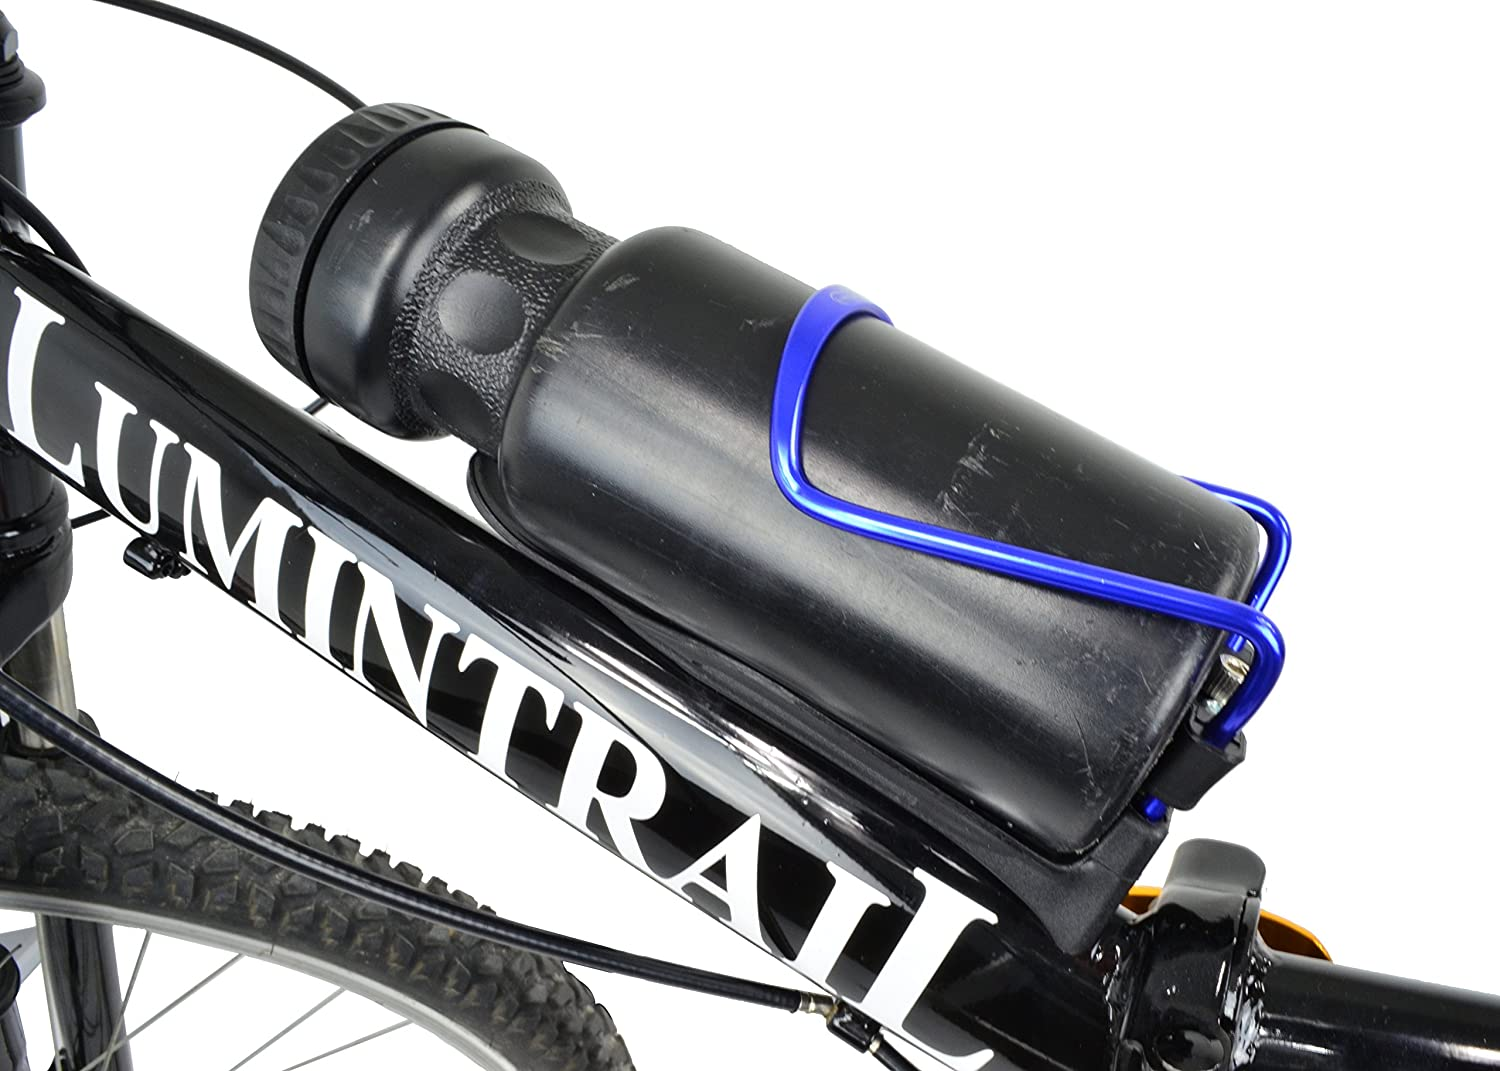 1 or 2 Packs Lumintrail Adjustable Bike Bicycle Lightweight Aluminum Alloy Water Bottle Cage Holder